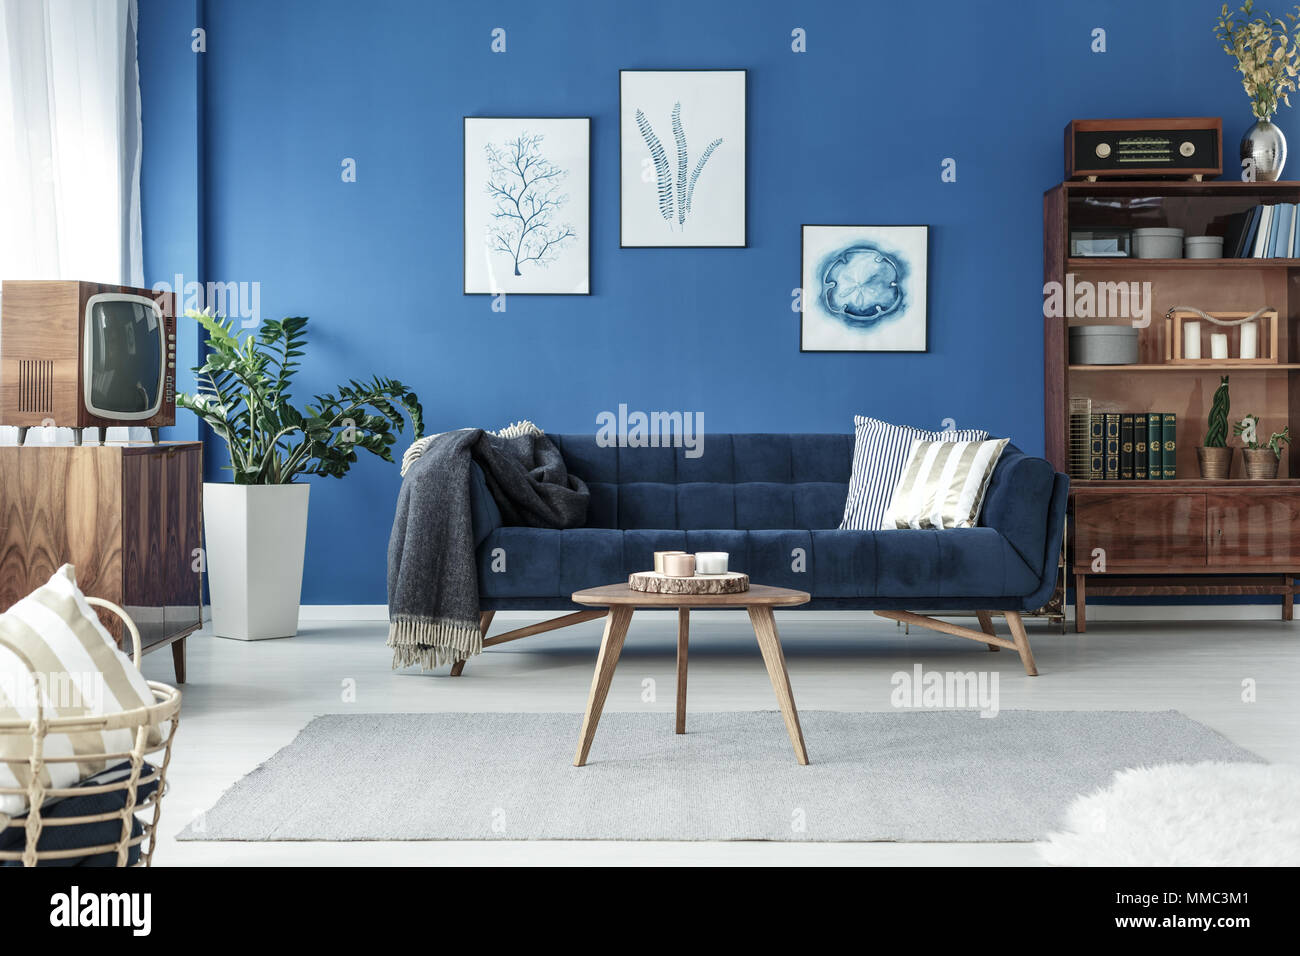 Spacious cozy living room designed in vintage style Stock Photo